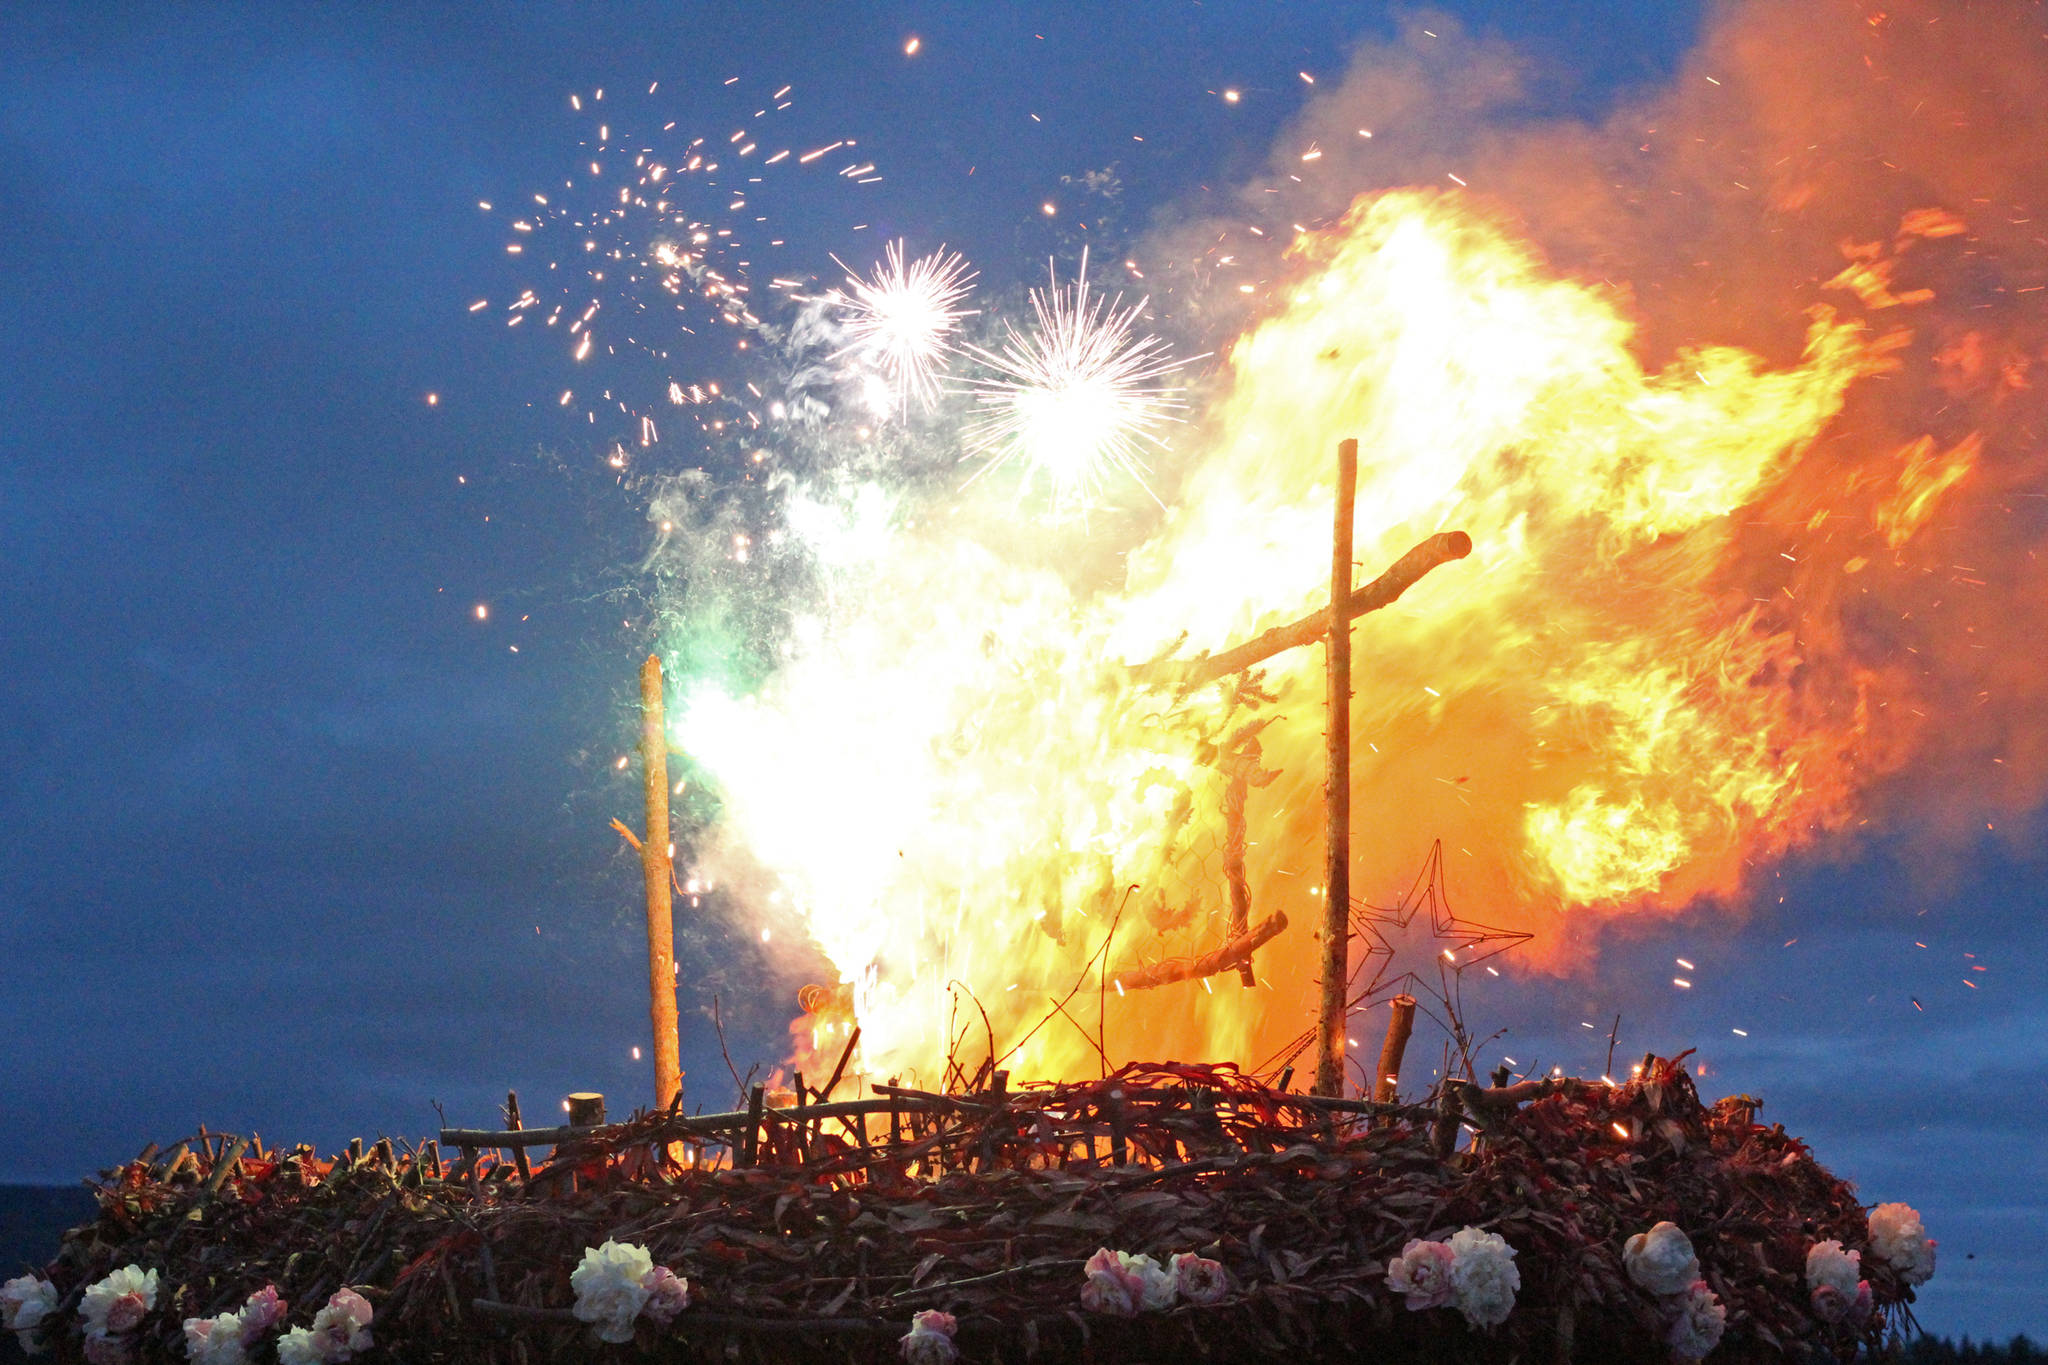 """Fireworks explode on top of this year's Burning Basket Project while it burns in a celebratory ceremony Sunday, Sept. 10, 2017 at Mariner Park in Homer, Alaska. This year's theme for the basket was """"Shine."""" (Photo by Megan Pacer/Homer News)"""